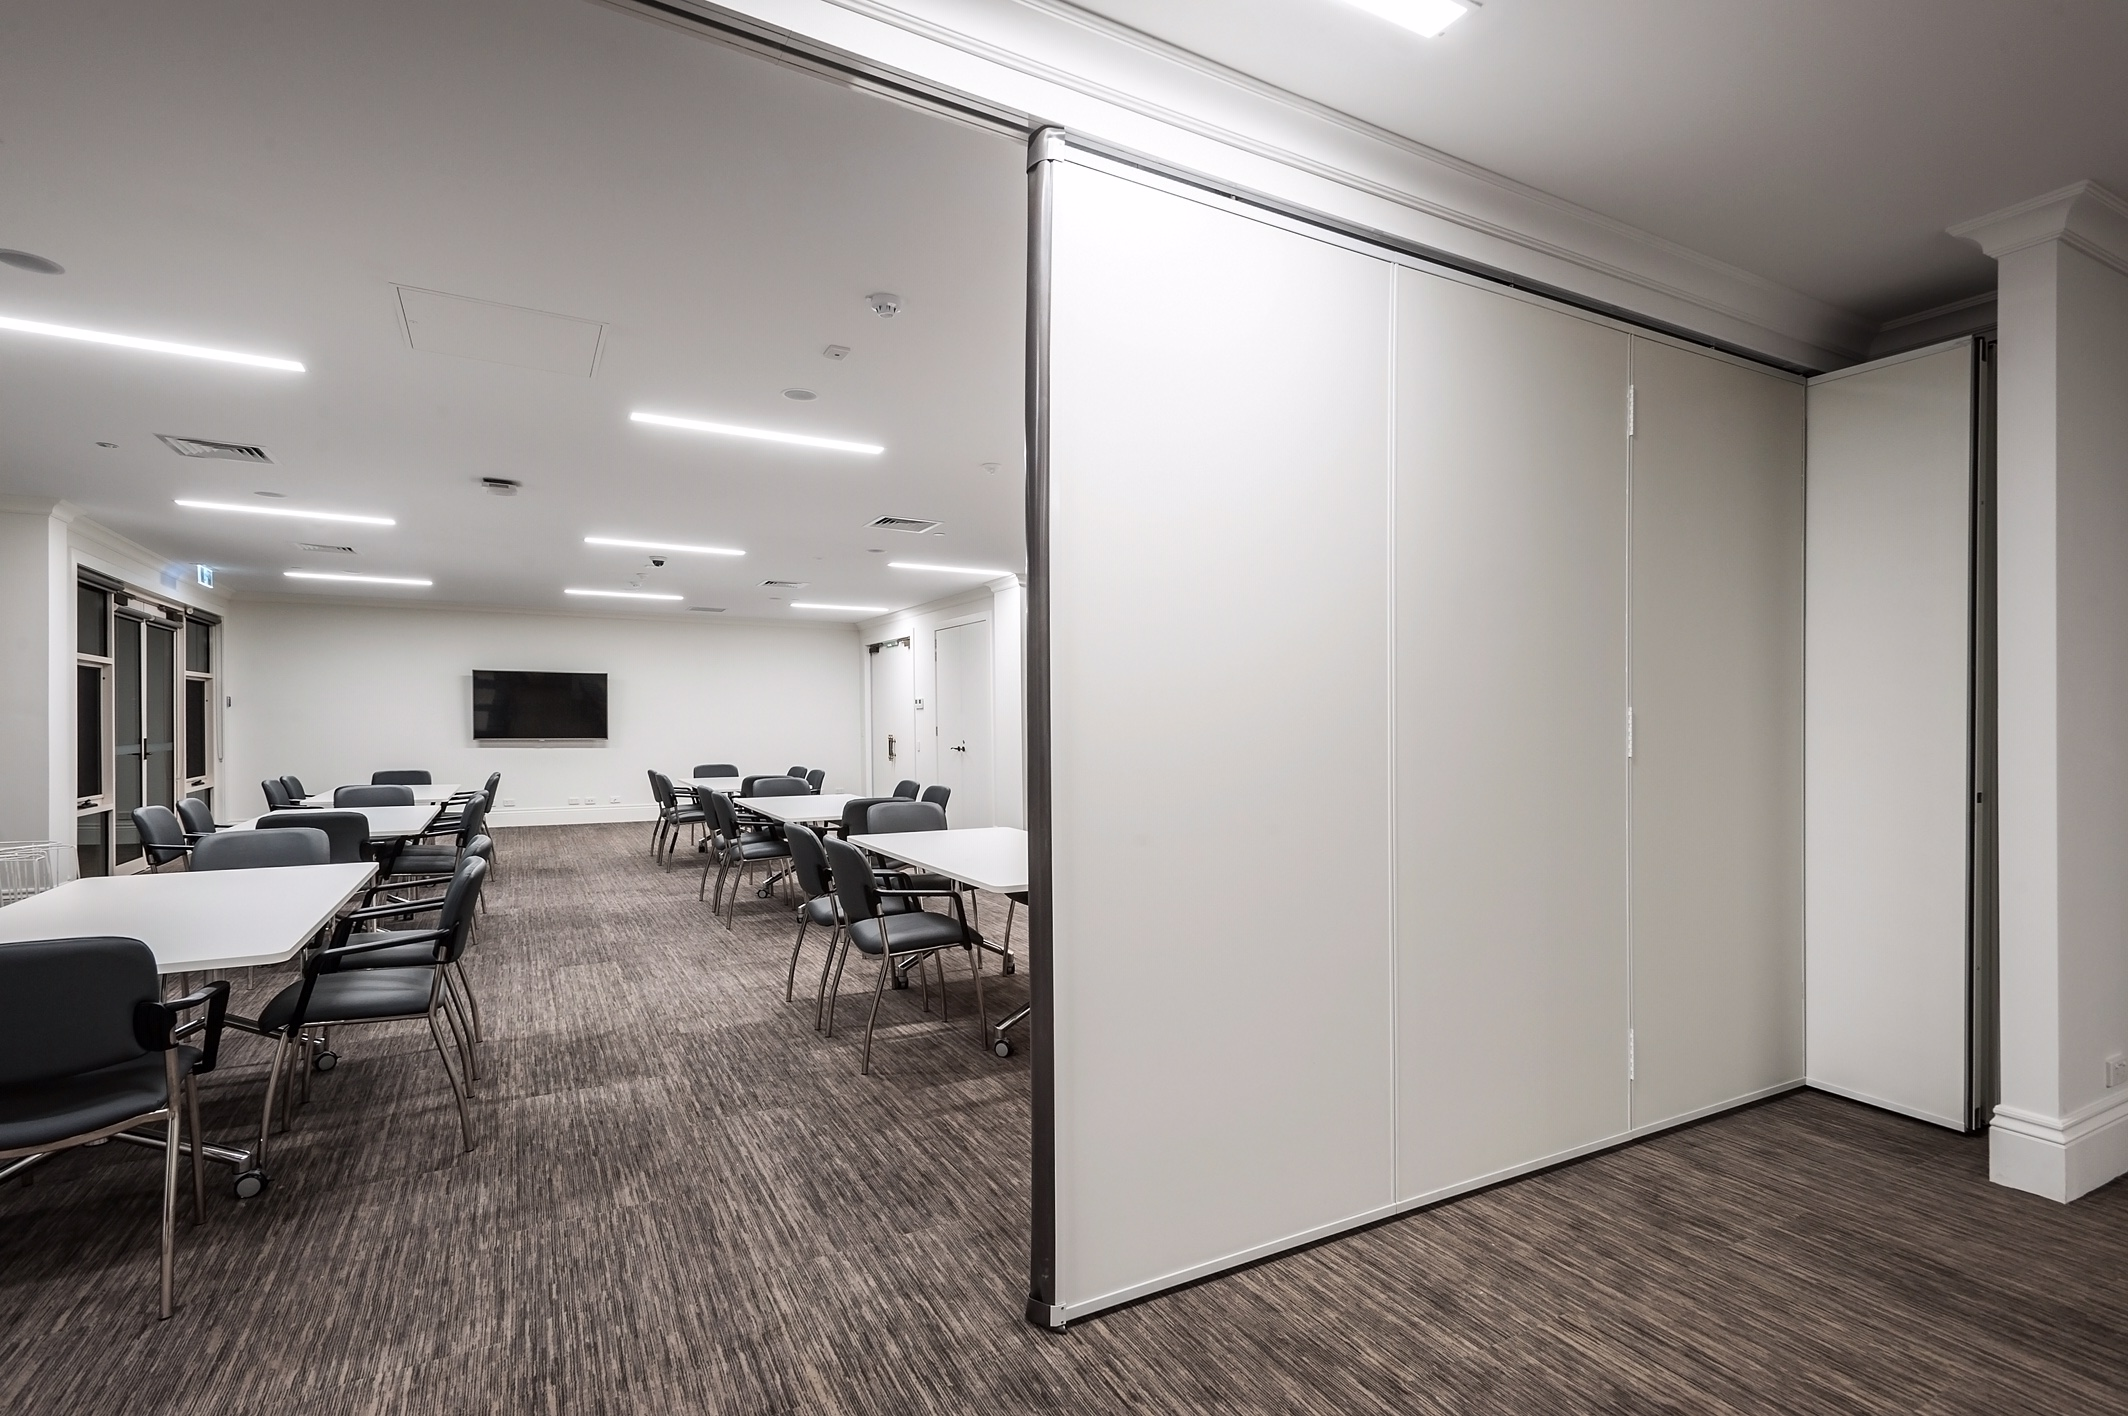 Hufcor Operable Walls Creative Space Management For Aged